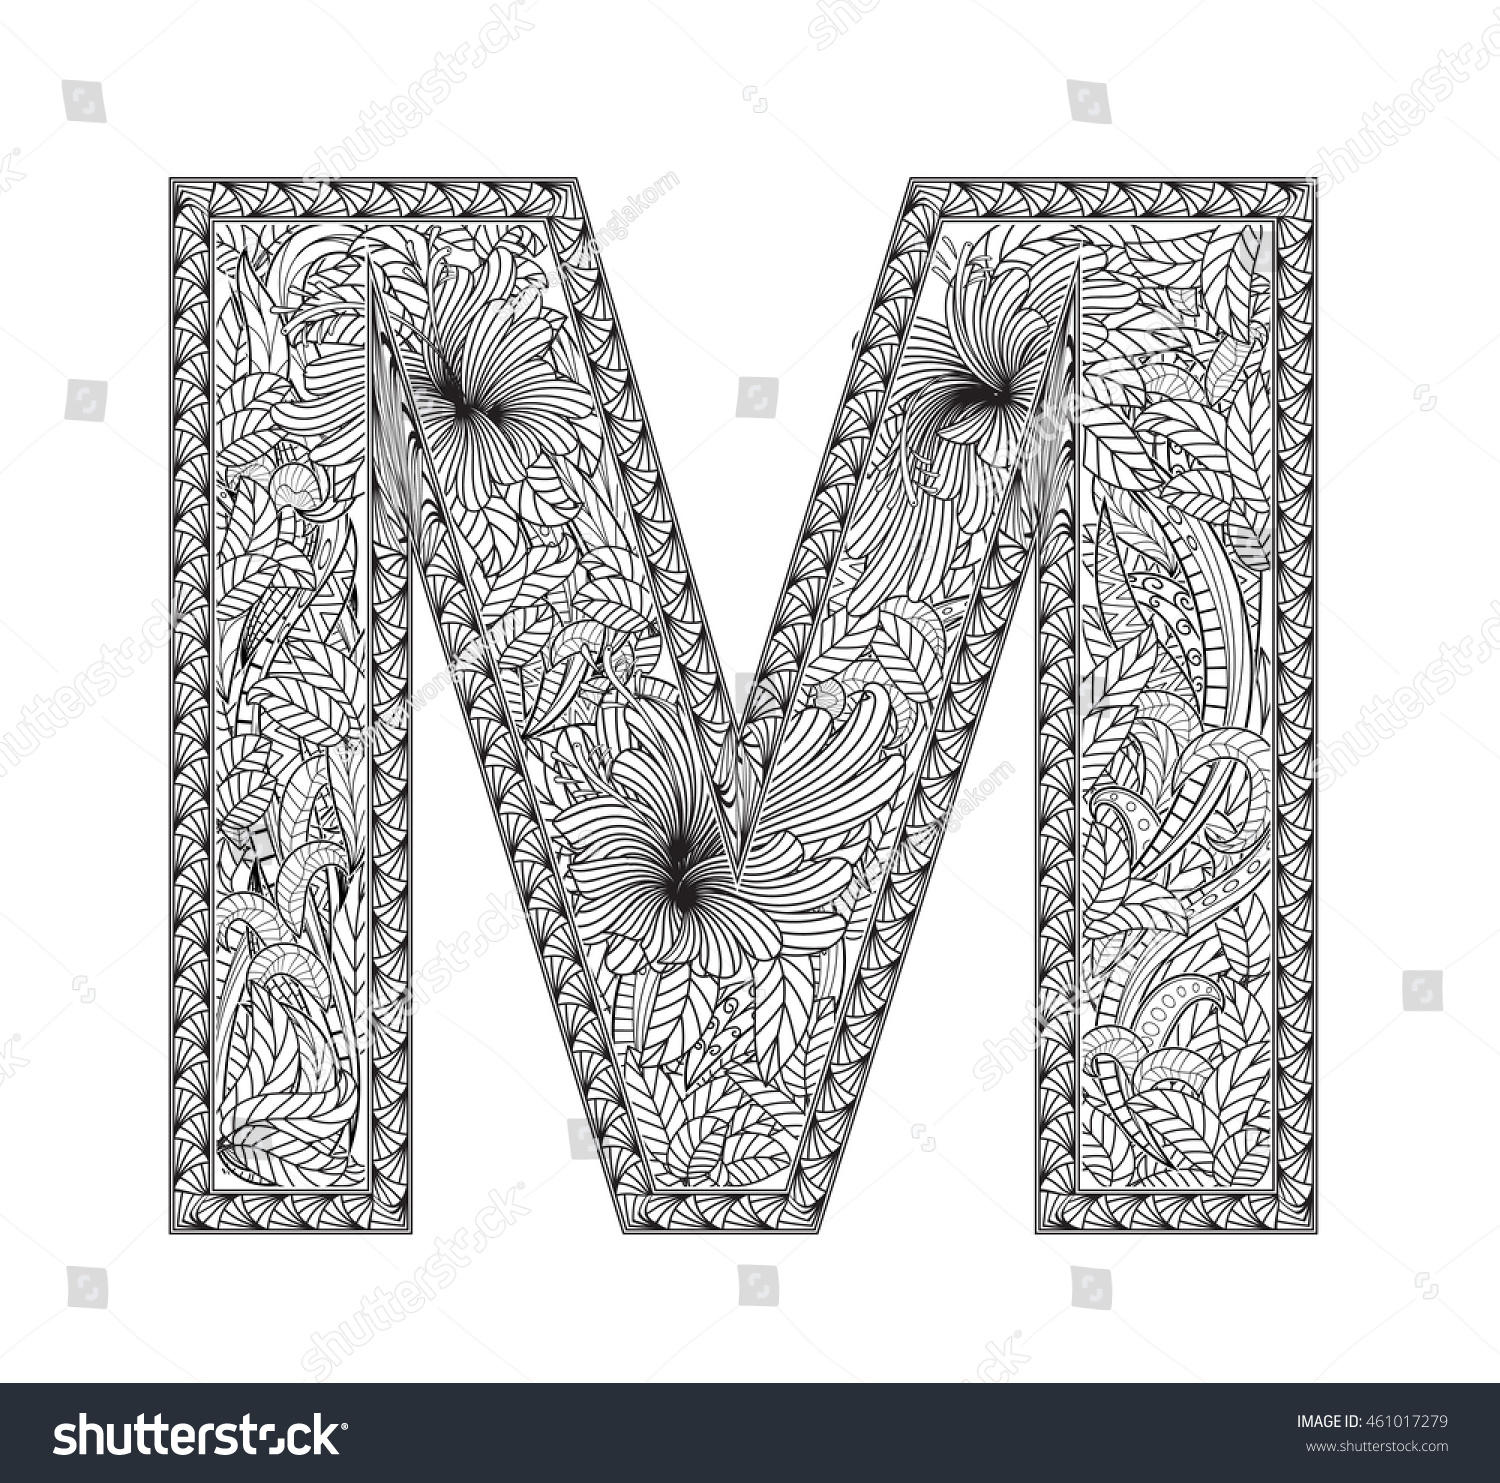 Zentangle Stylized Alphabet Letter M In Doodle Style Hand Drawn Sketch Font 461017279